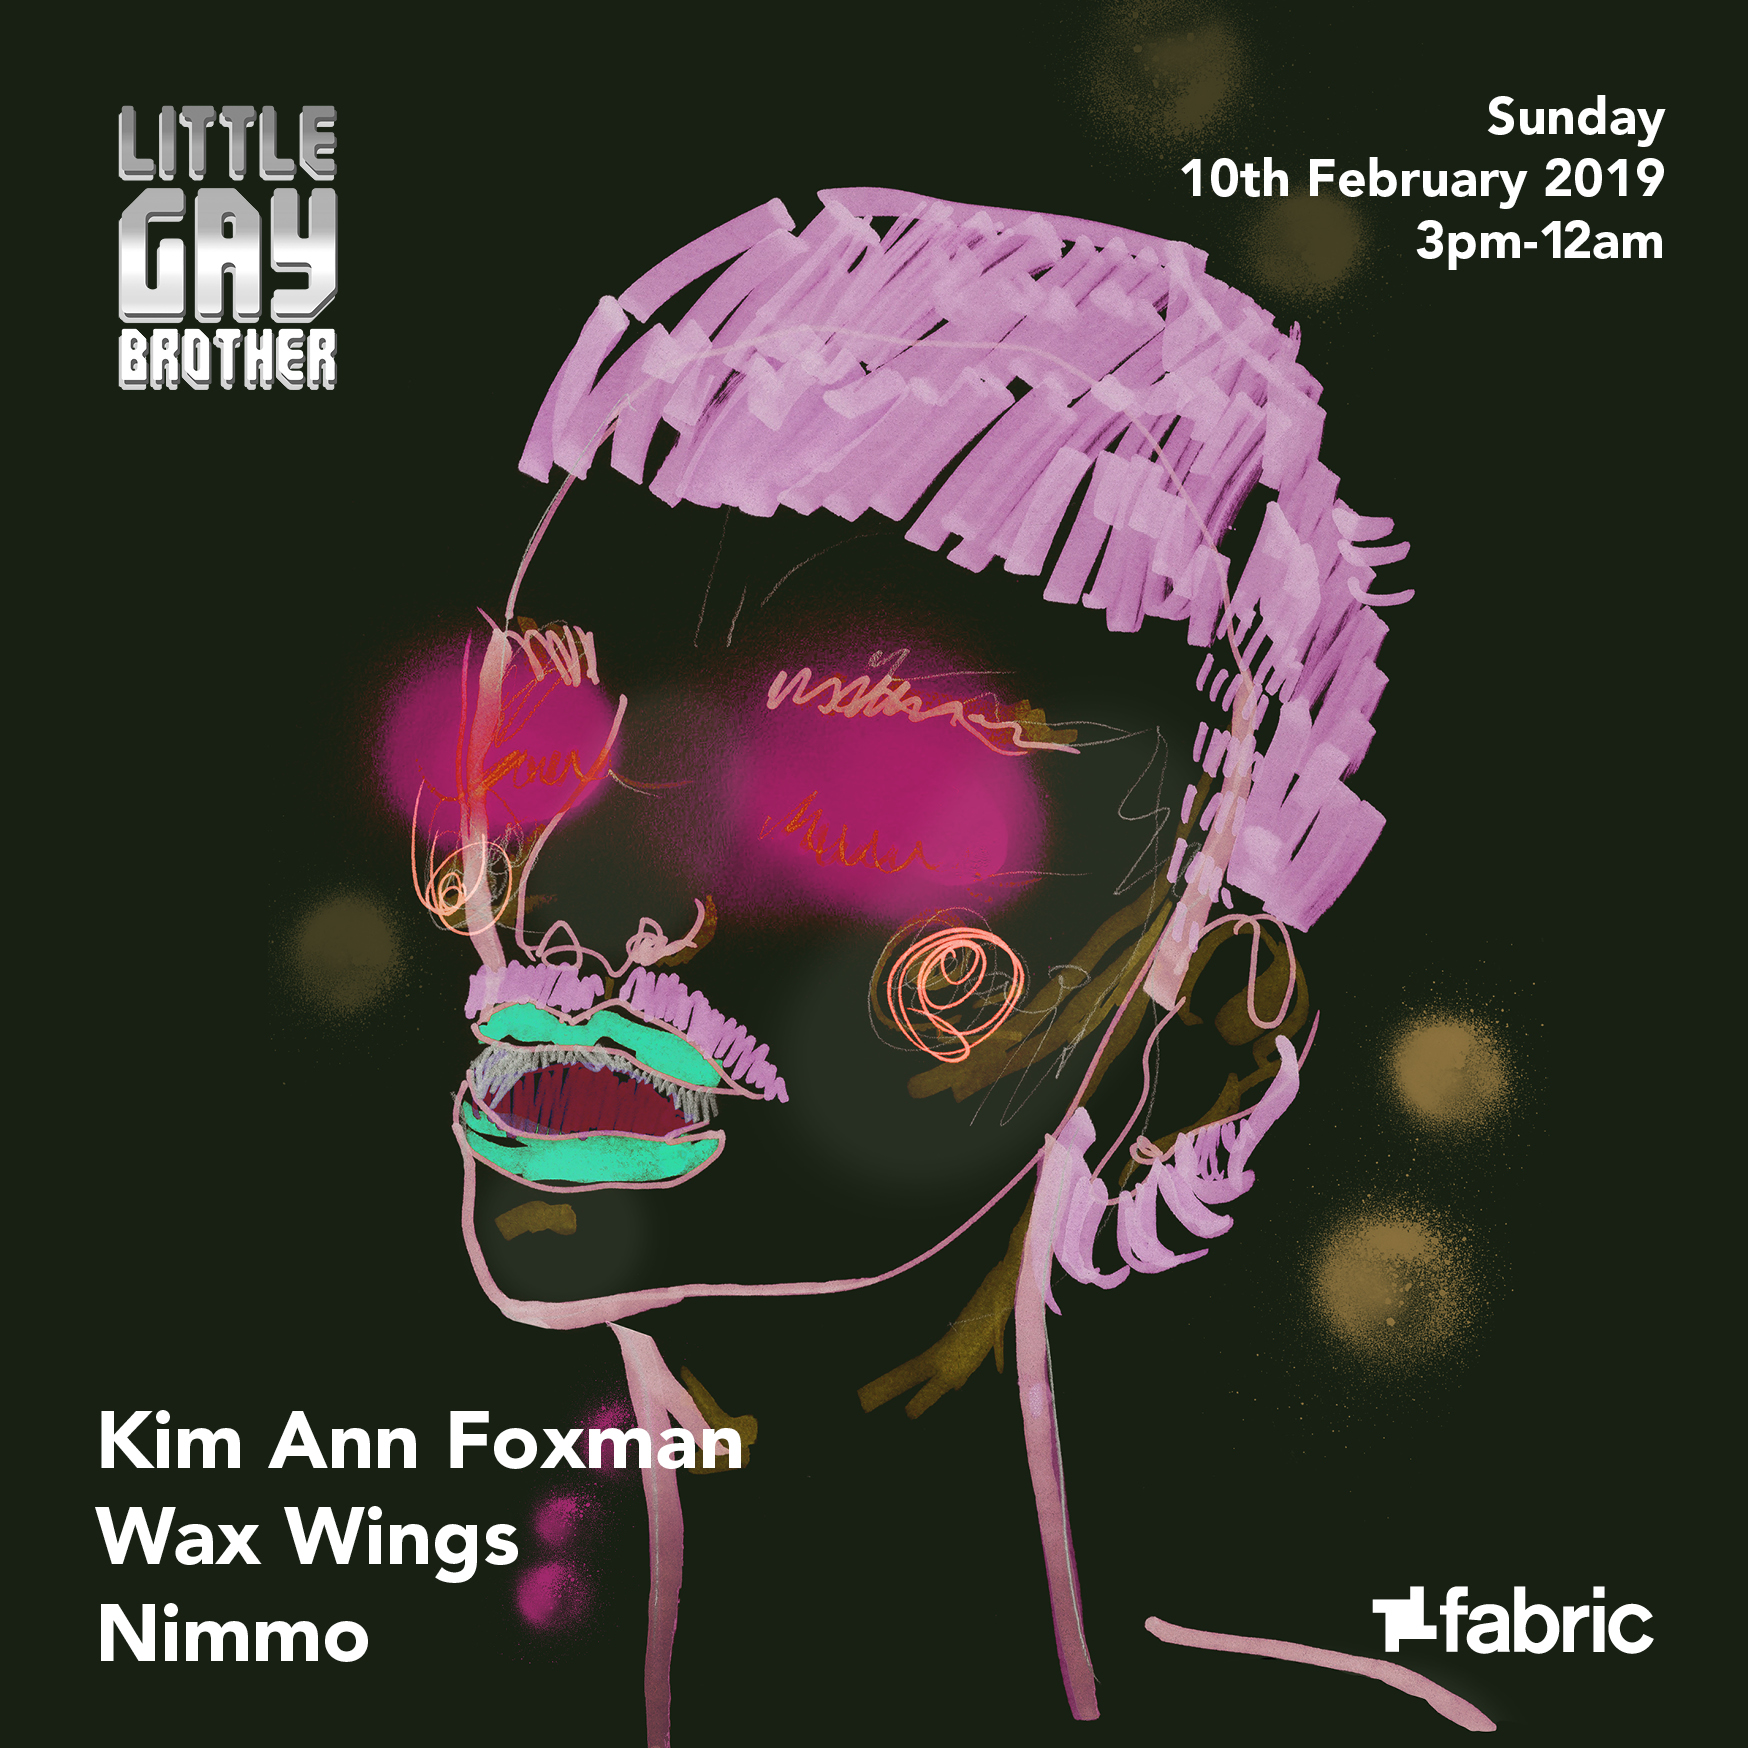 sundays at fabric - 10th FEBRUARY 2019LITTLE GAY BROTHER RETURNS TO FABRIC TO CONTINUE IT'S QUEER SHOWCASE WITH KIM ANN FOXMAN, WAX WINGS, NIMMO